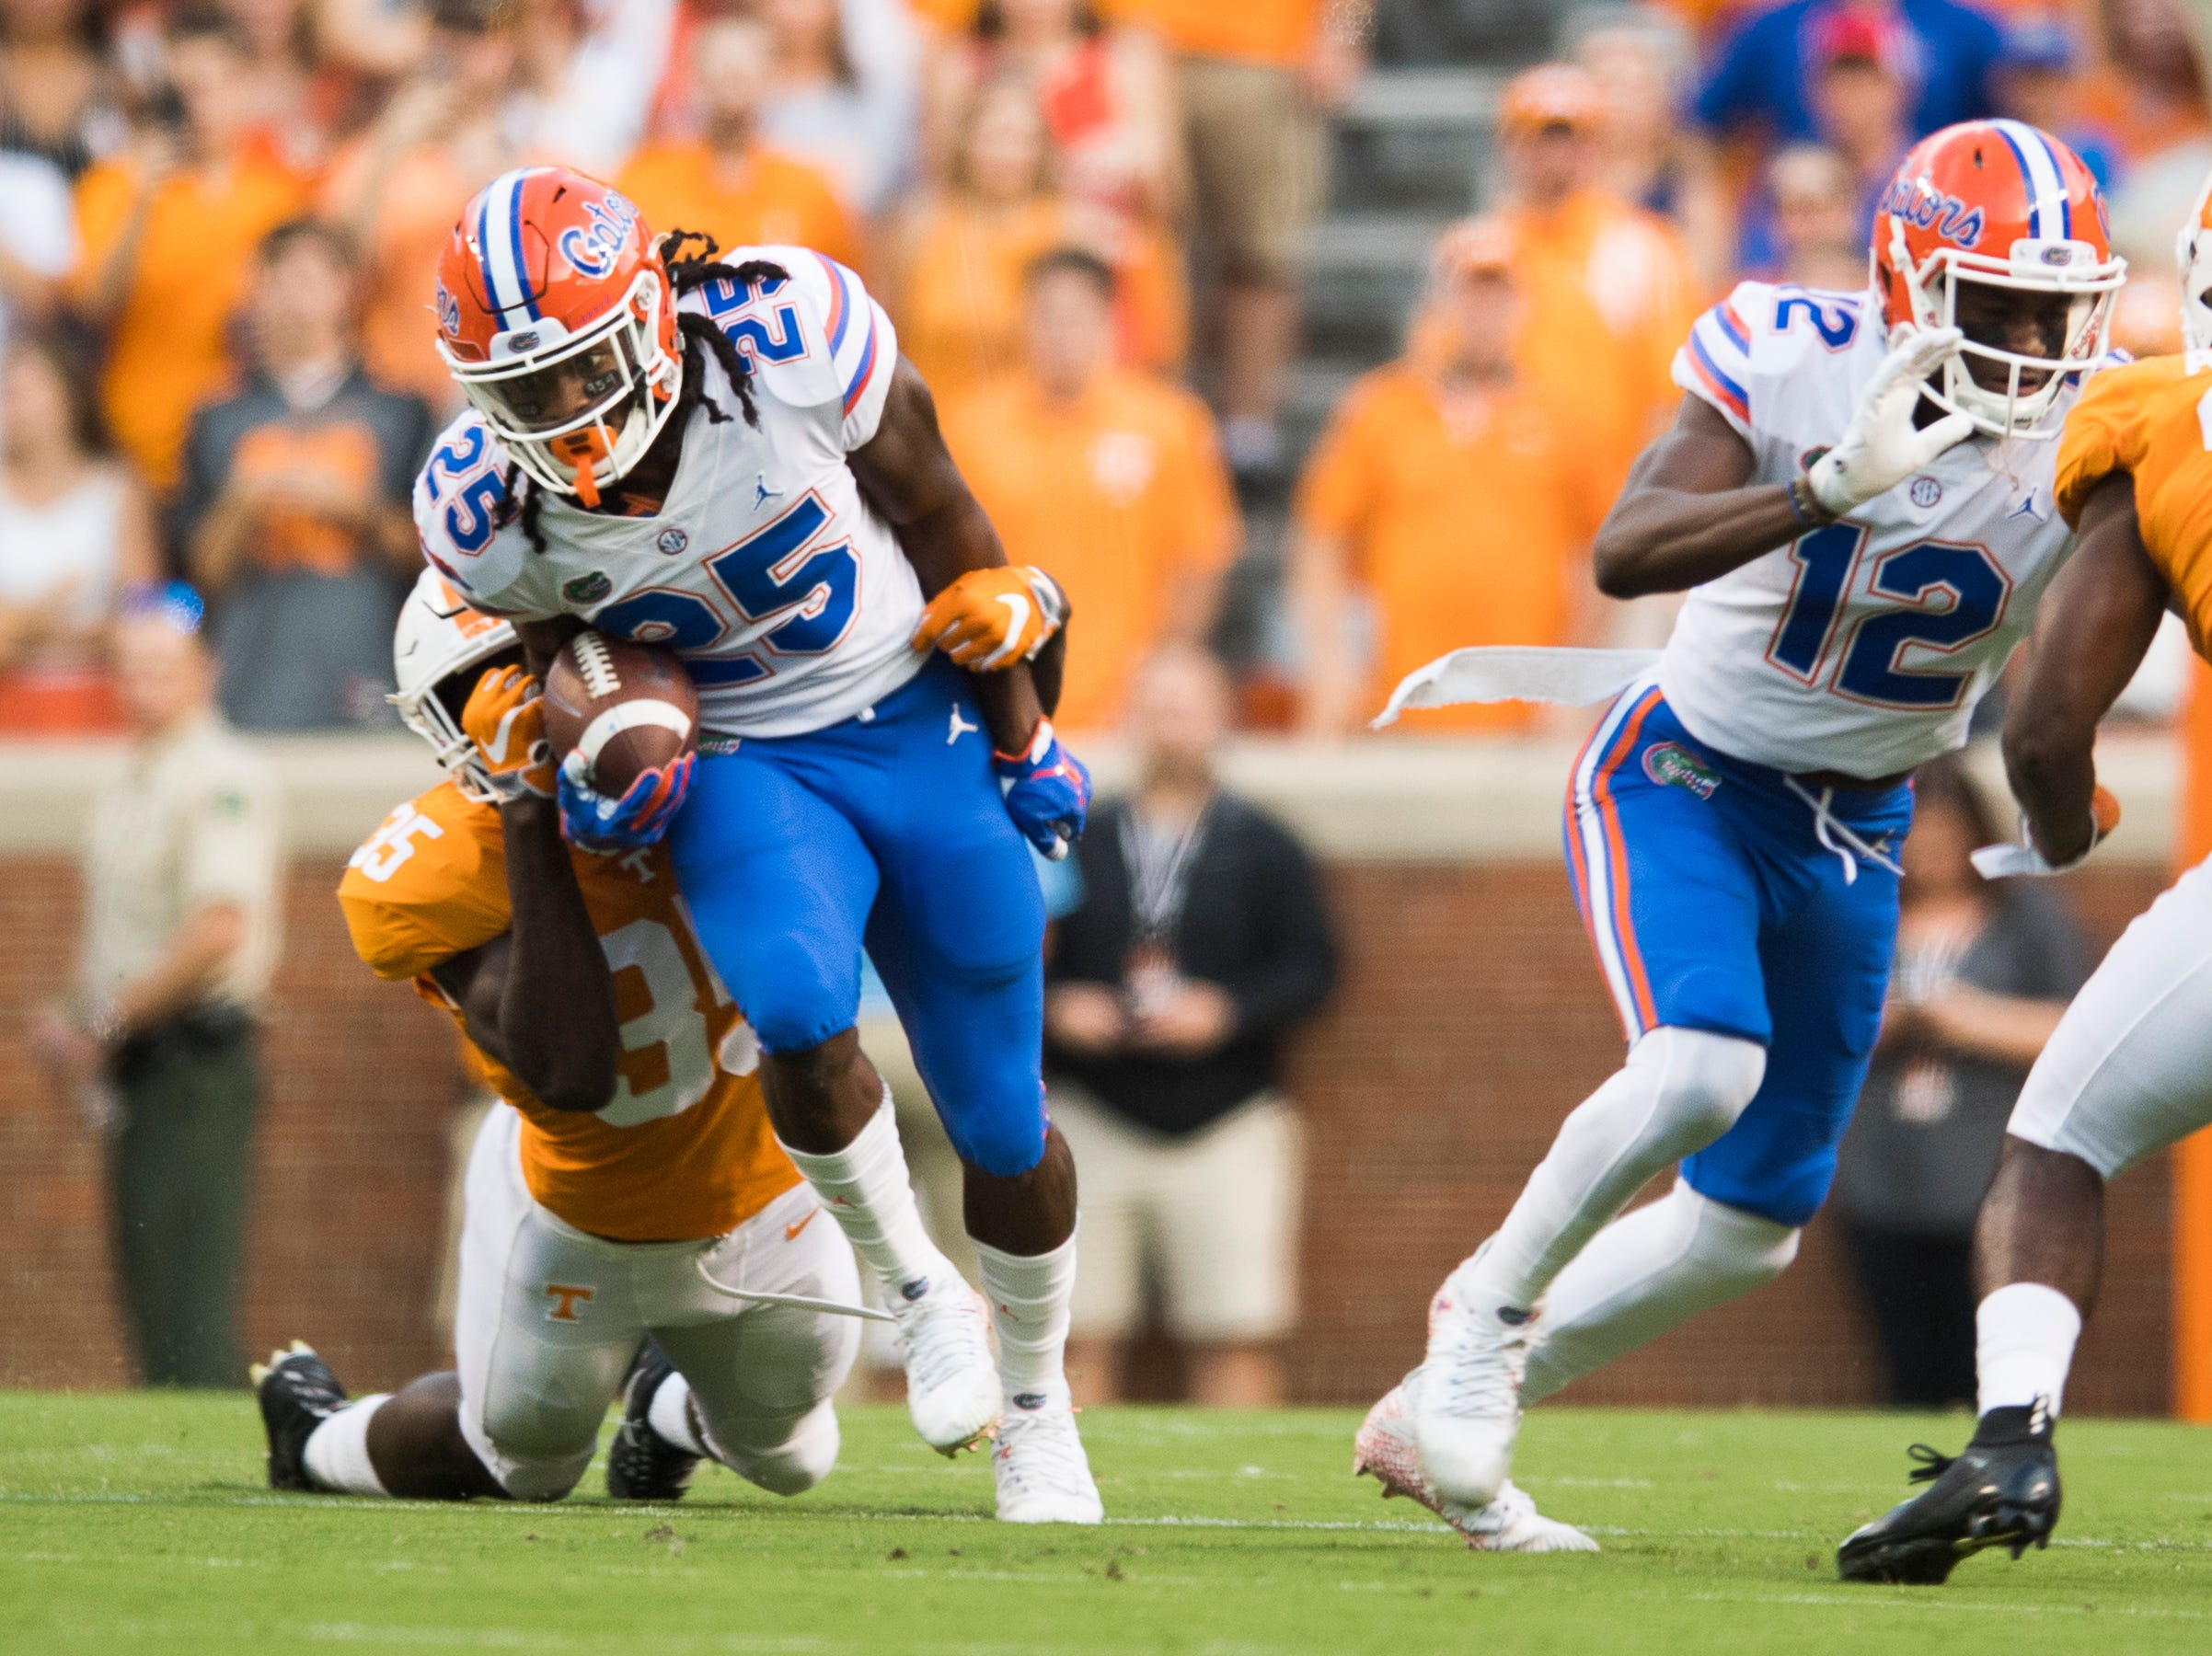 Tennessee linebacker Daniel Bituli (35) attacks Florida running back Jordan Scarlett (25) during a game between Tennessee and Florida at Neyland Stadium in Knoxville, Tennessee on Saturday, September 22, 2018.